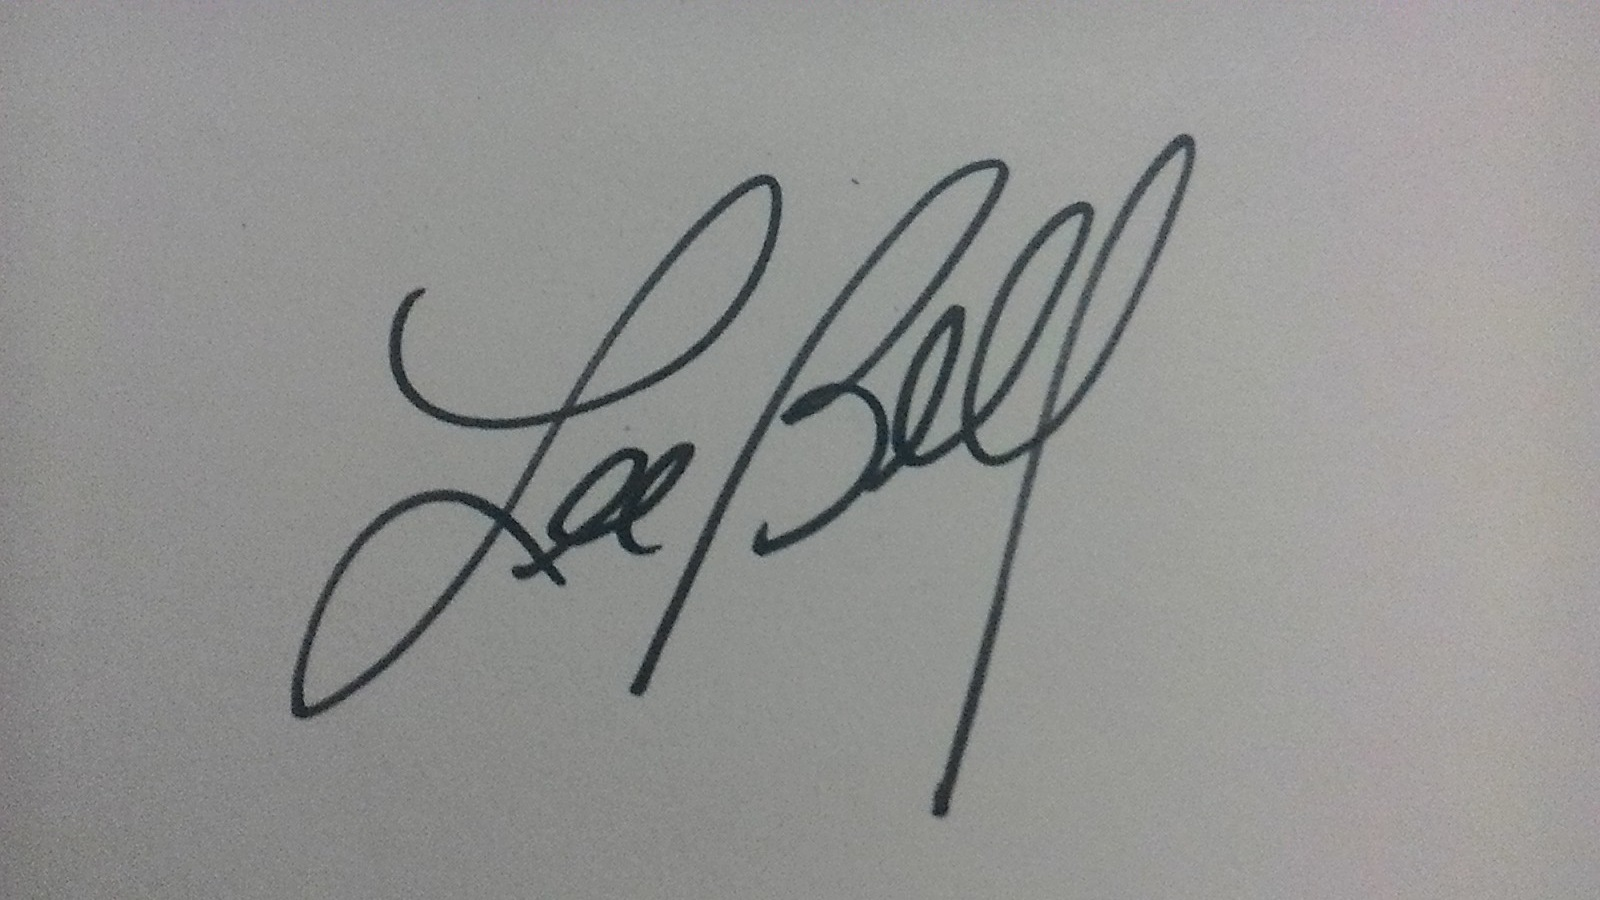 Lee Bell Signature